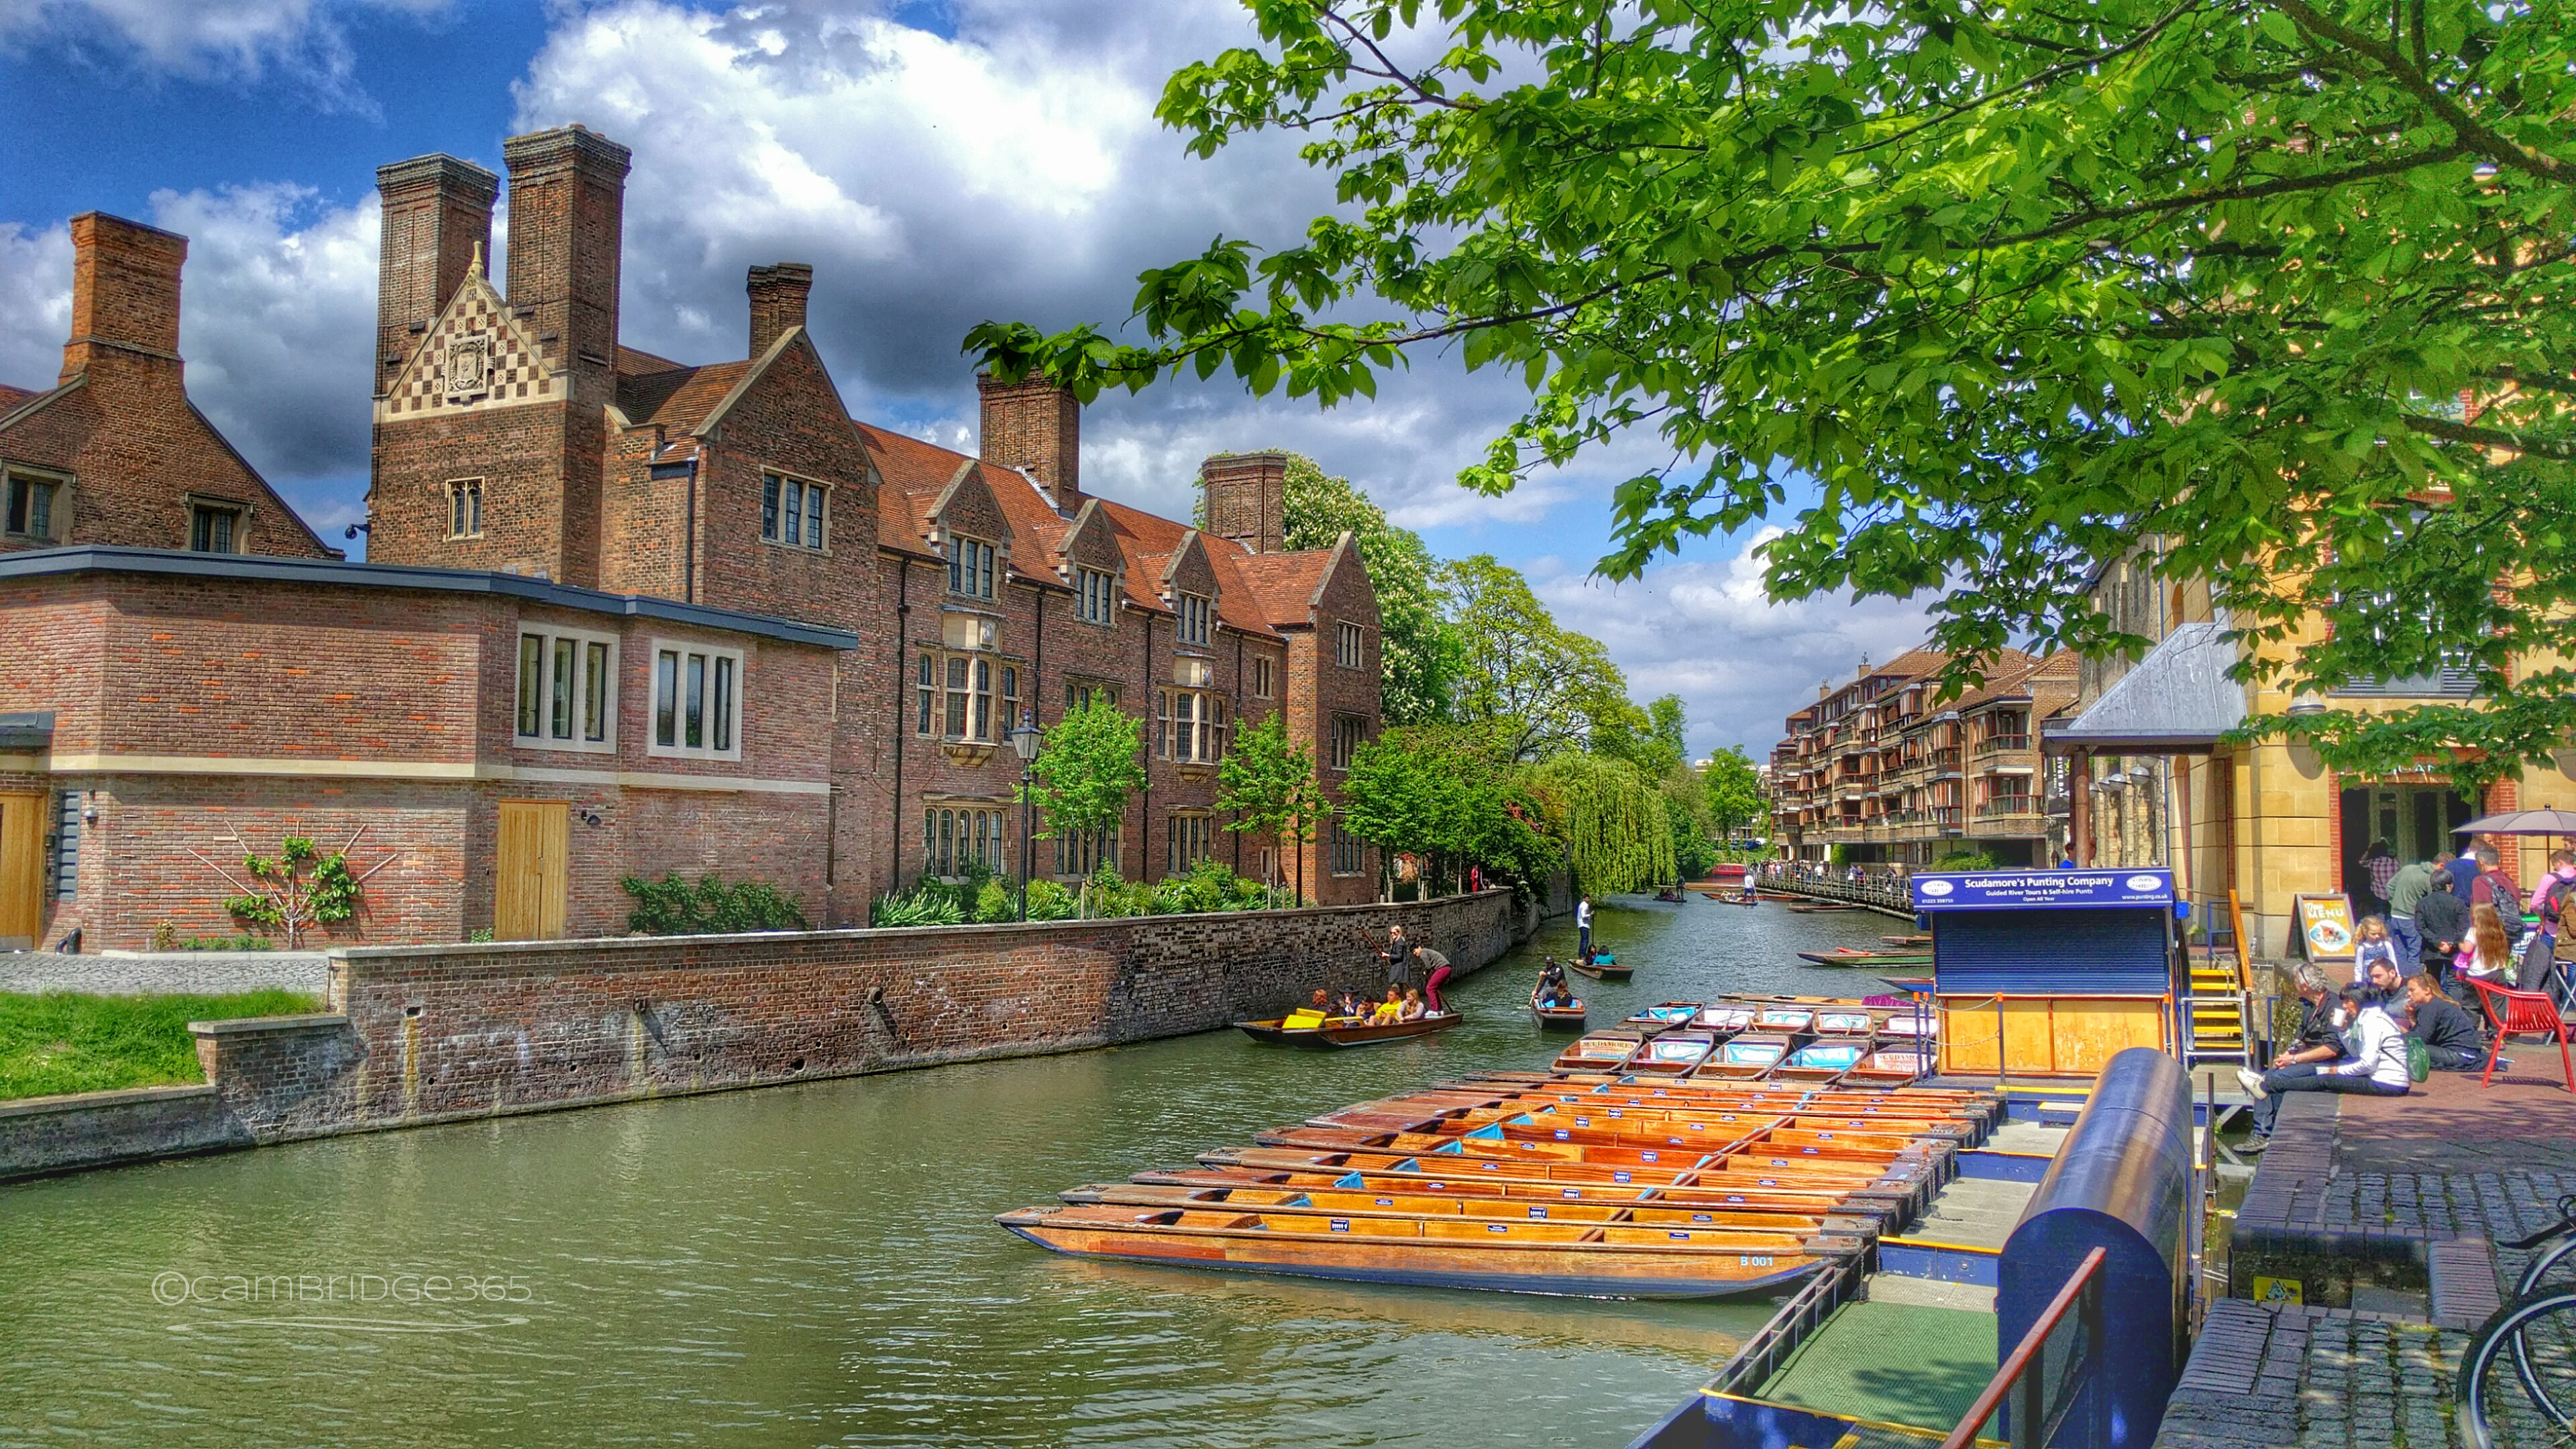 Magdalene College, Cambridge as seen from Quayside on the opposite bank of the River Cam